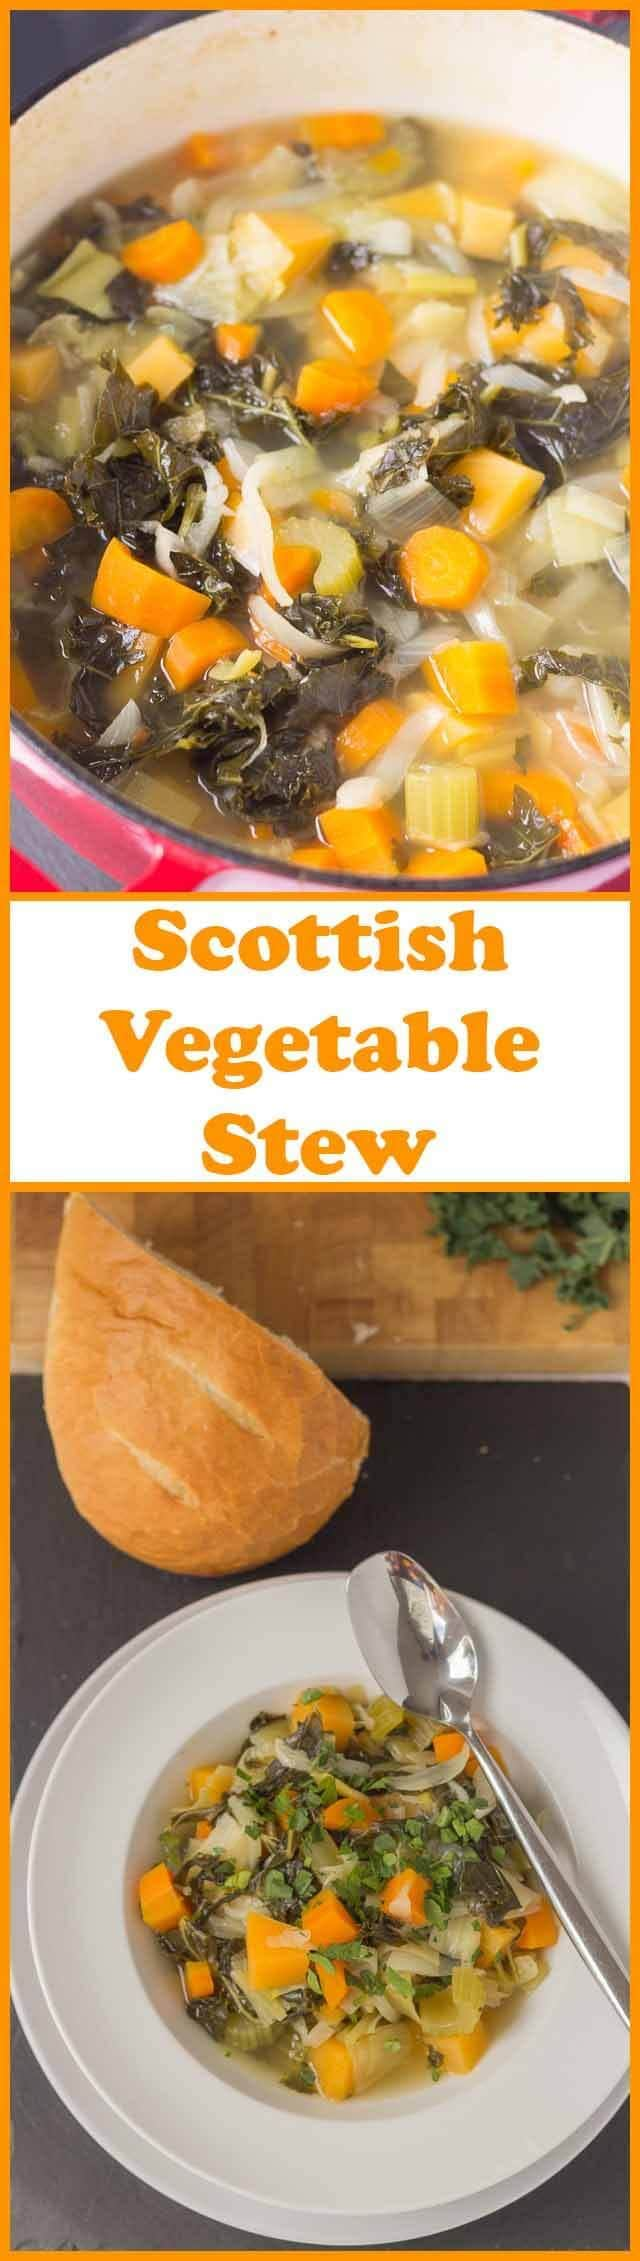 This homemade Scottish vegetable stewis just the thing to warm you up on a chilly evening. And, it's even better when served with thick slices of farmhouse bread!